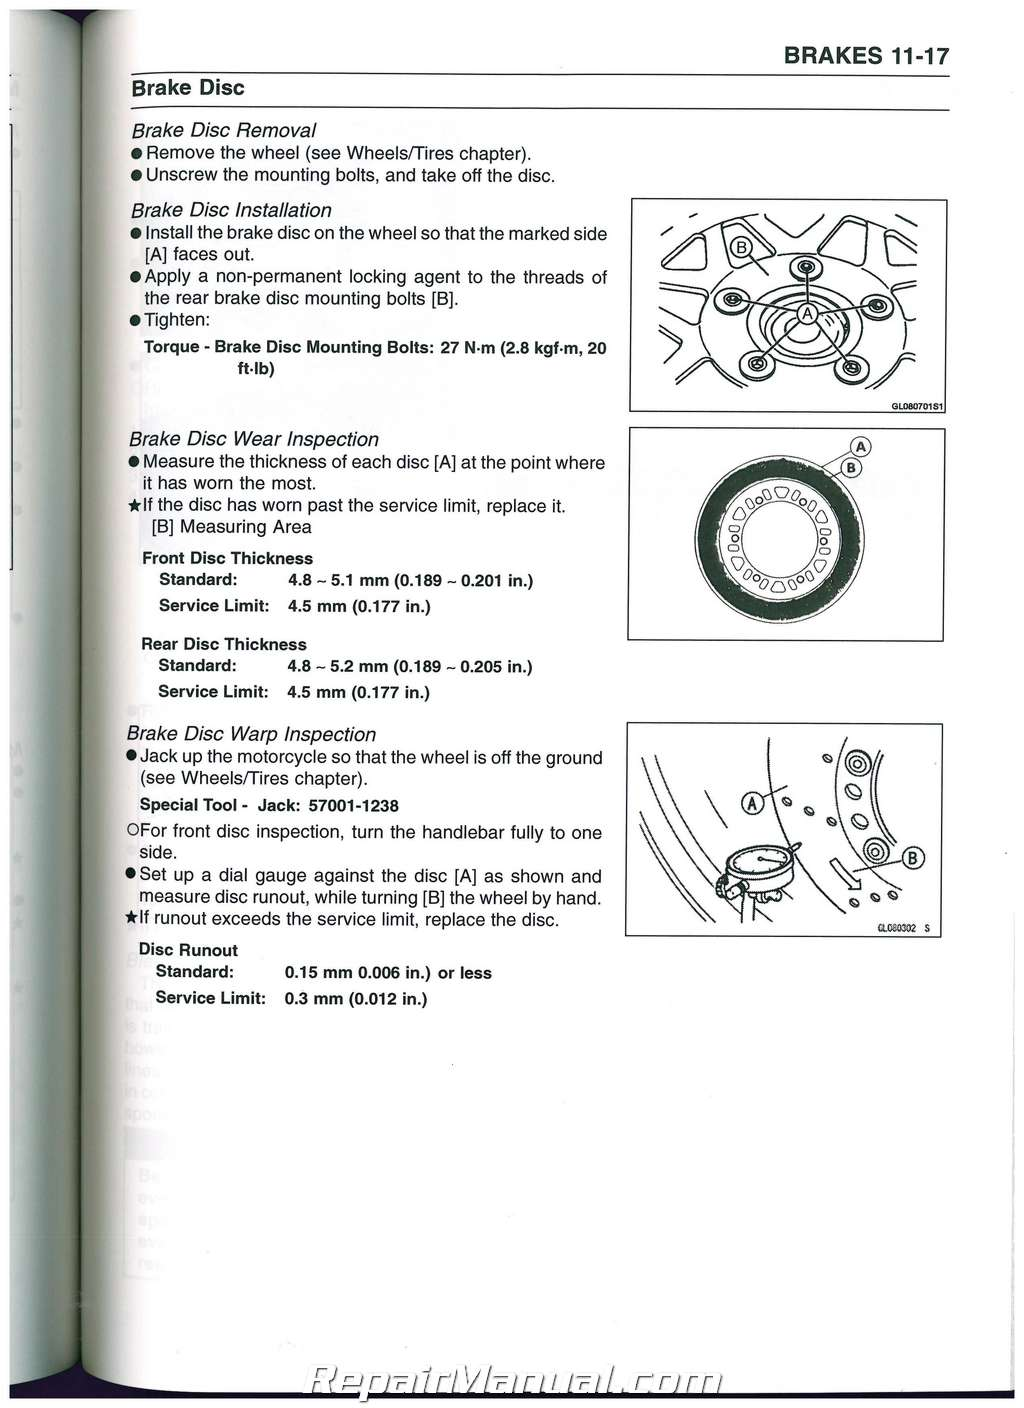 2008 kawasaki ninja zzr600 assembly manual